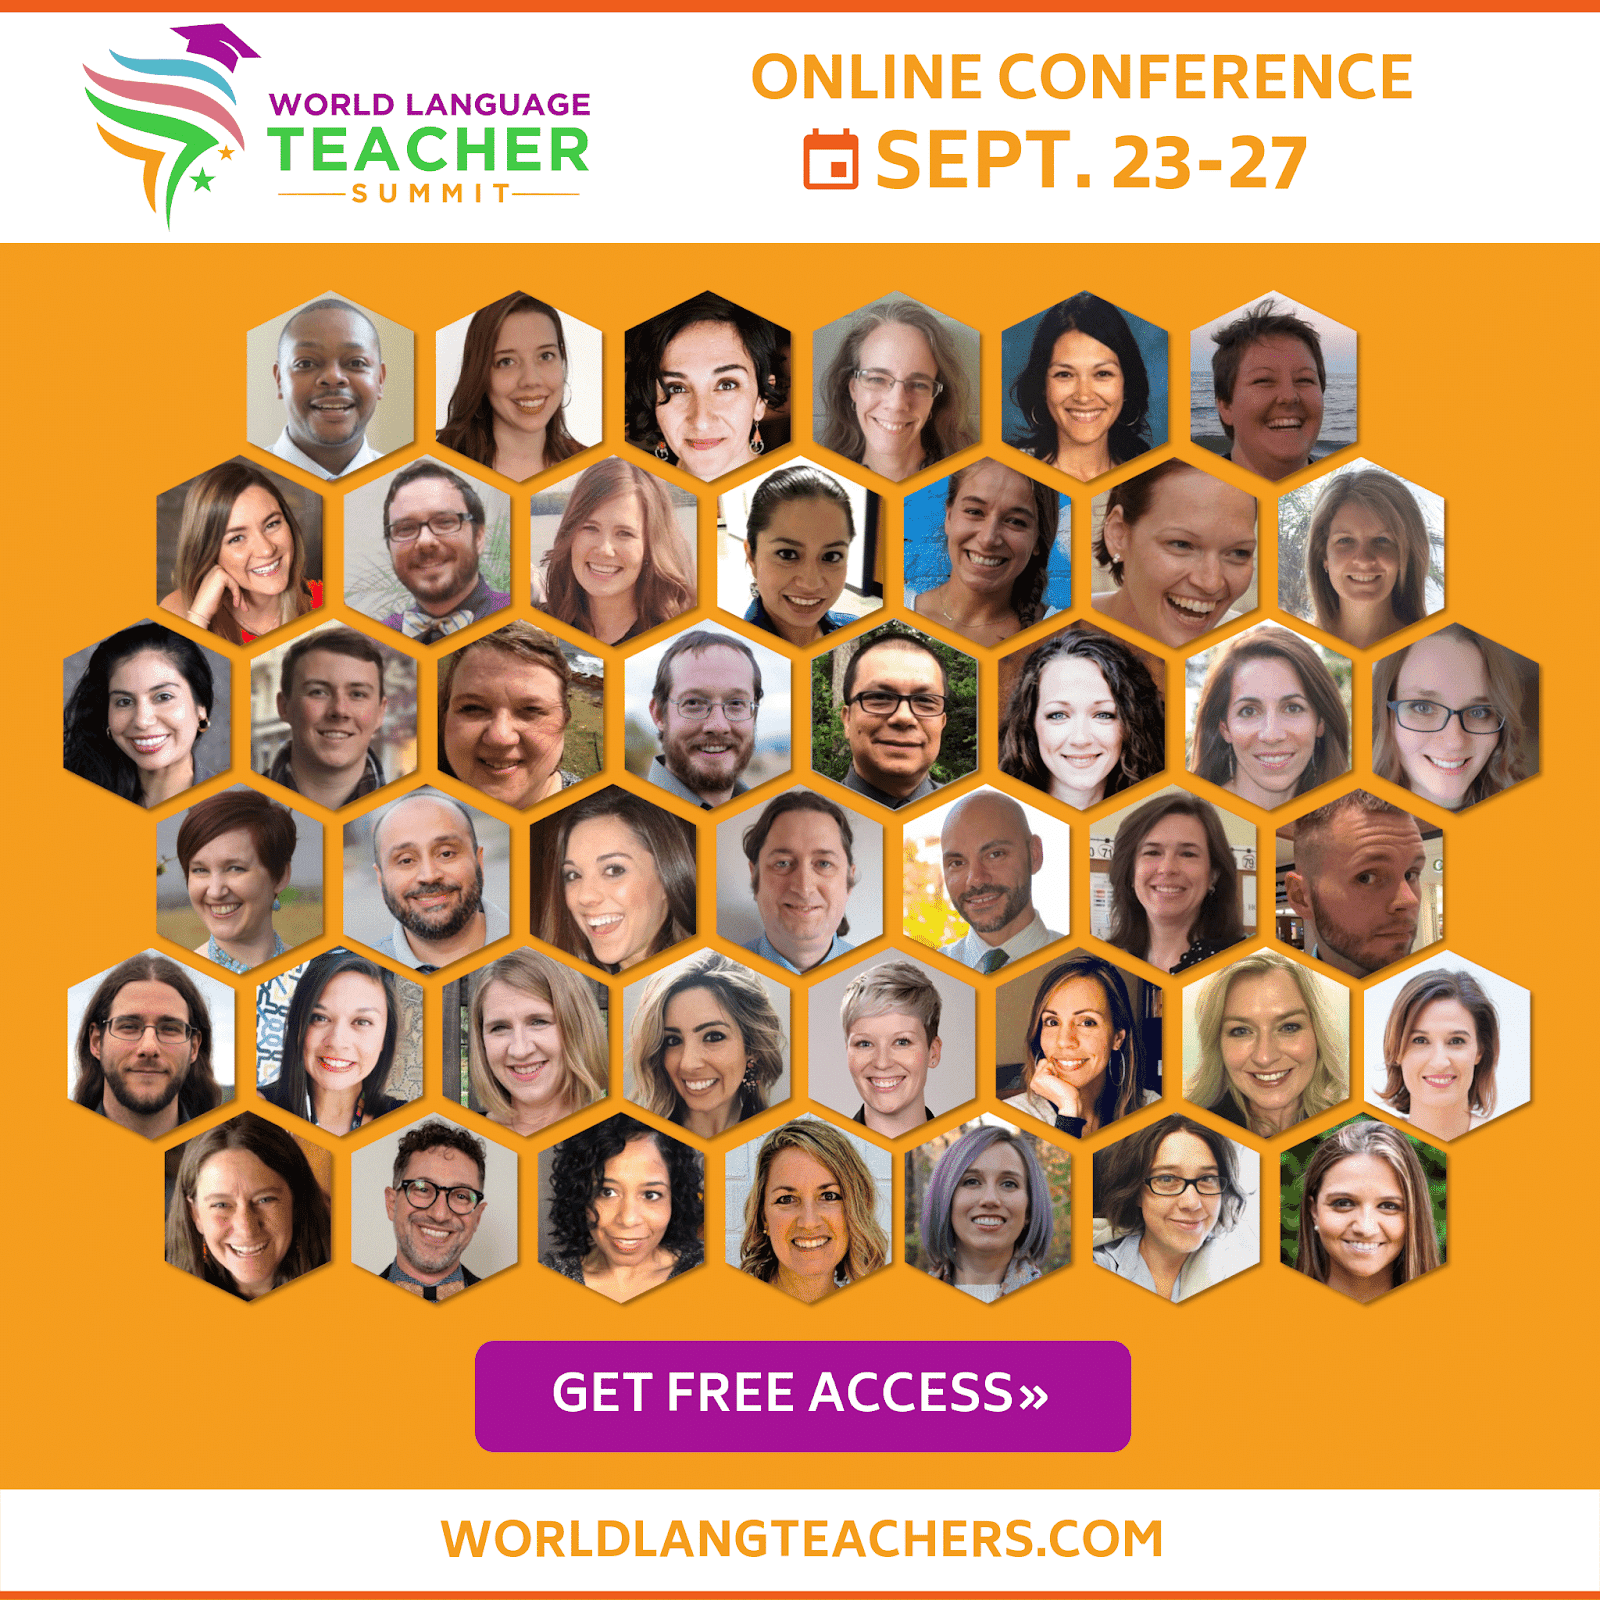 World Language Teacher Summit  - online professional development for World Language teachers - shared by Mis Clases Locas